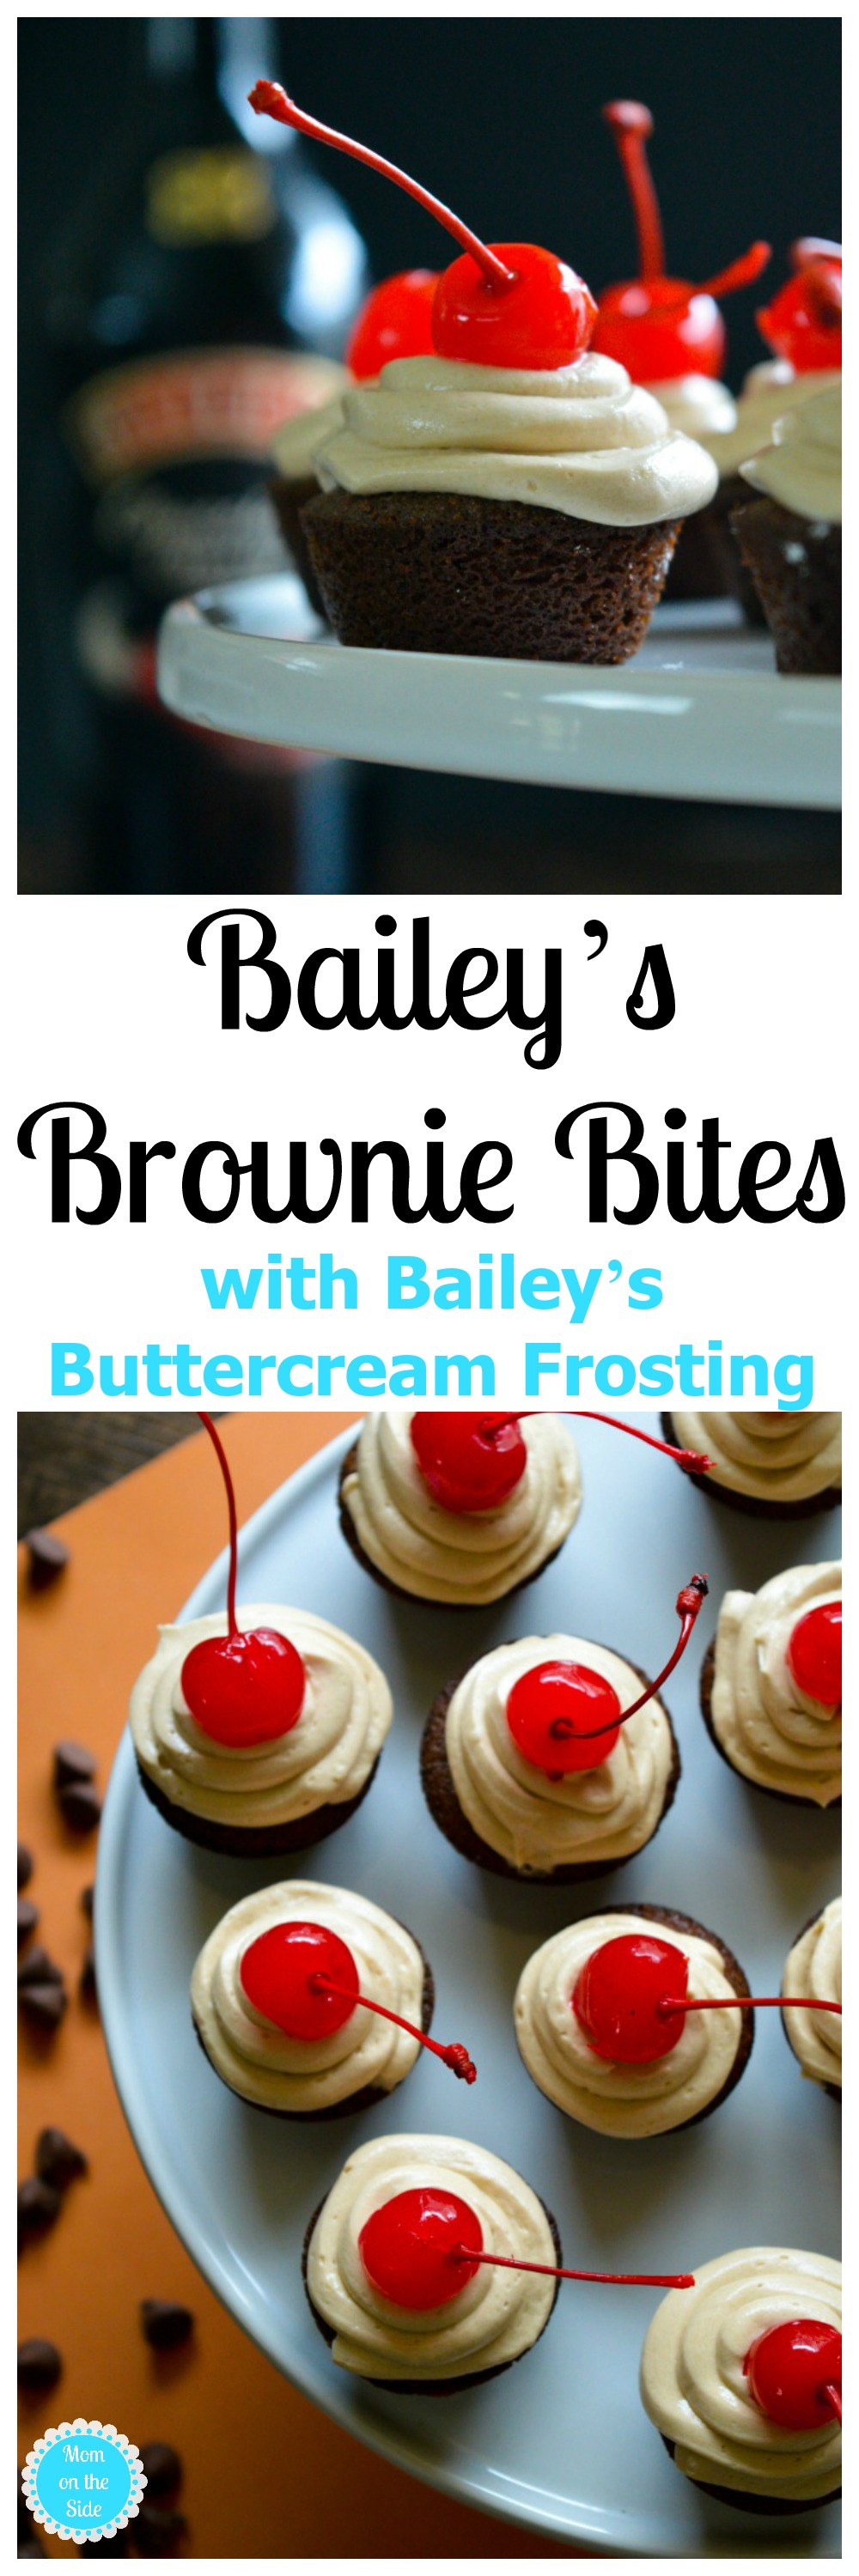 Looking for a decadent adult dessert? You've come to the right place! Bailey's Brownie Bites with Bailey's Buttercream Frosting on Mom on the Side.